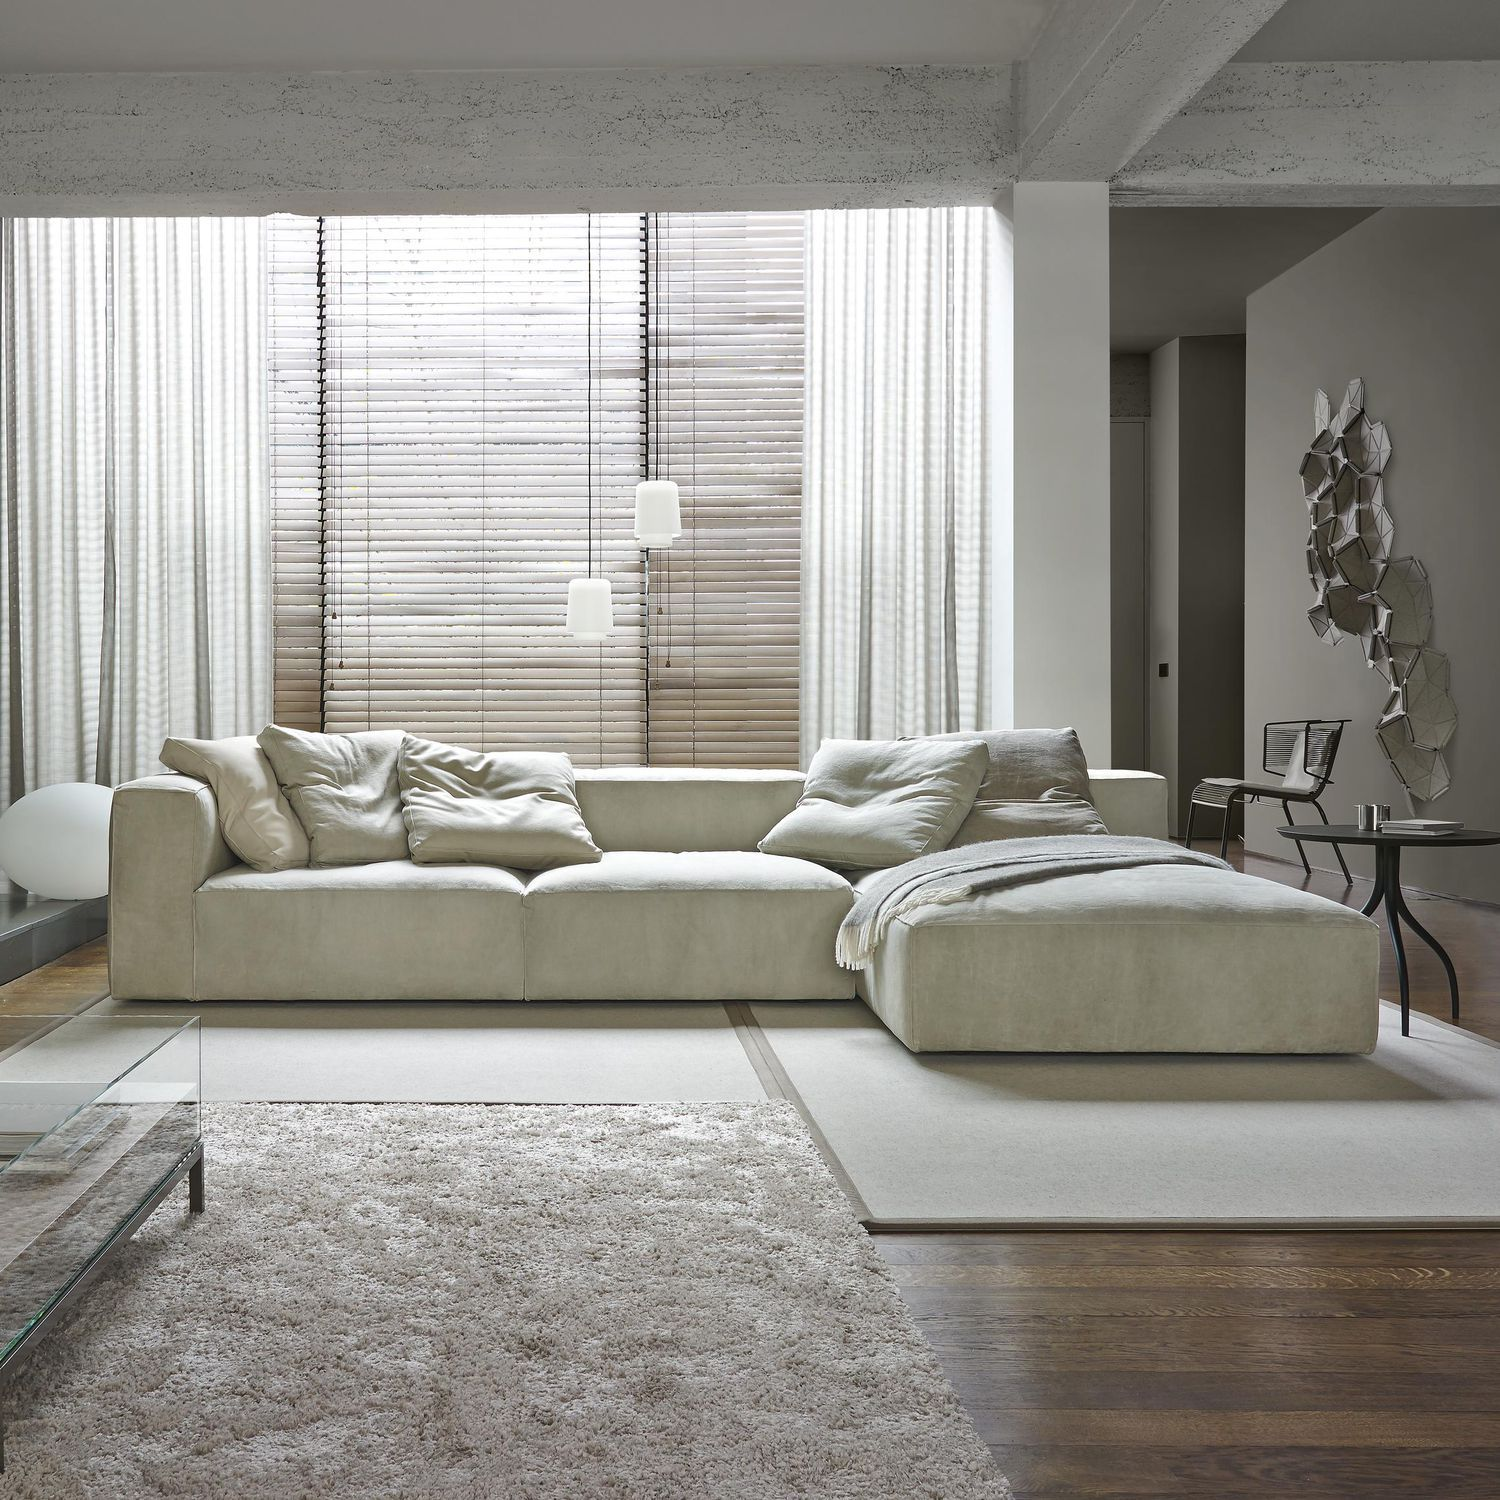 Design Salontafel Ligne Roset.Contemporary Leather Nils Ligne Roset Couch Upholstery